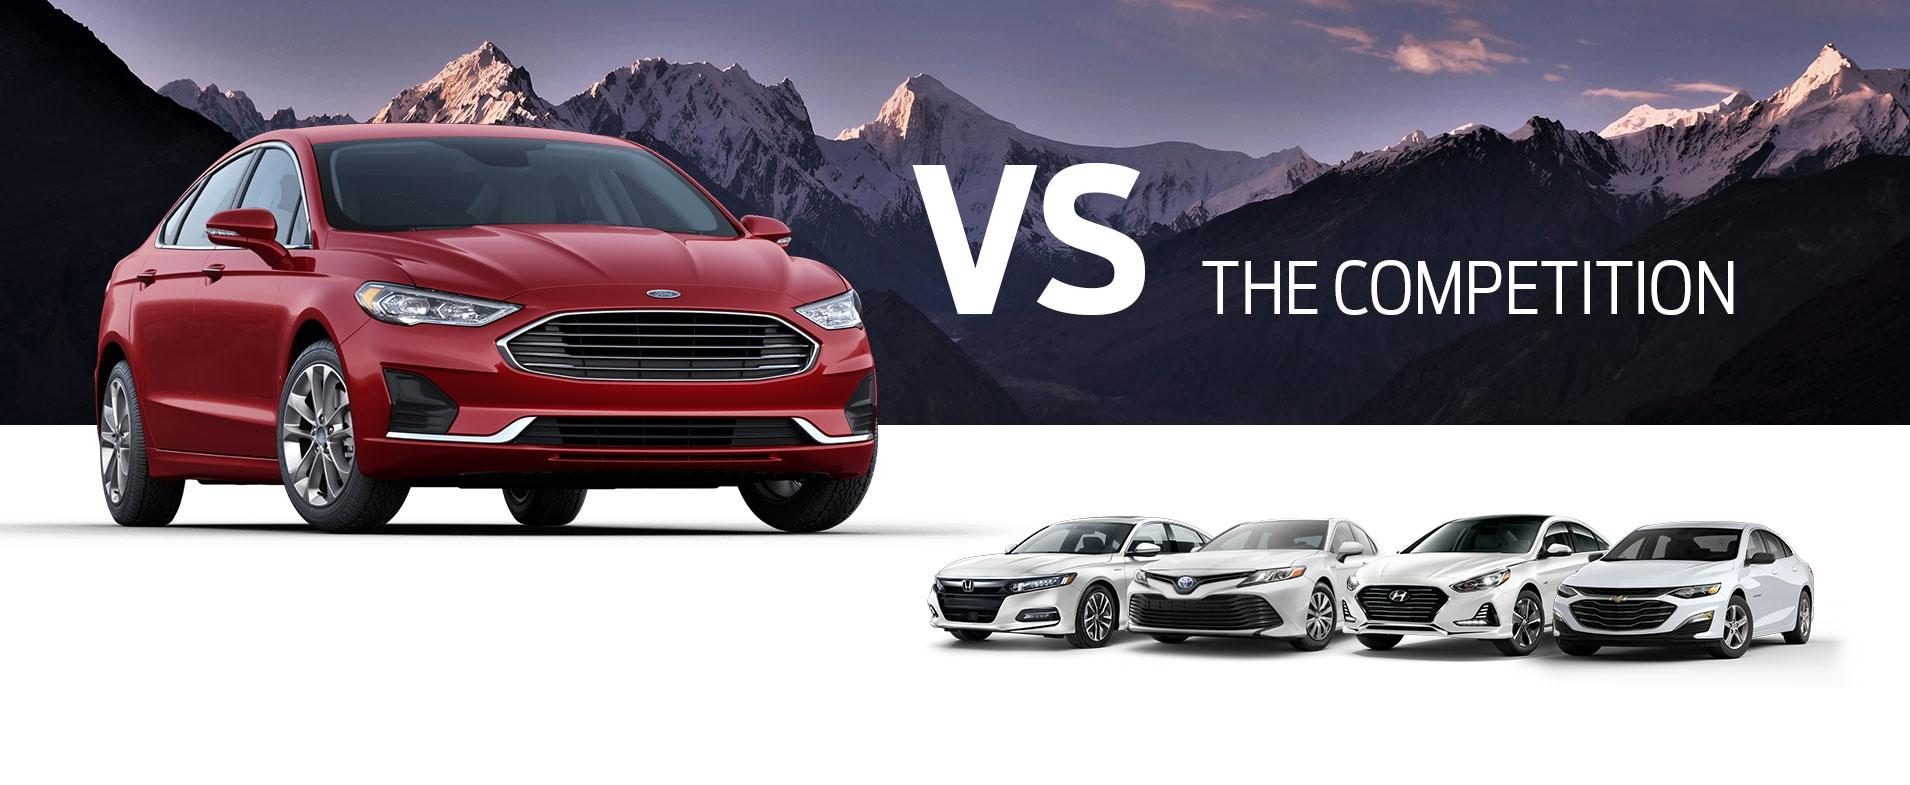 Fusion Hybrid vs Competition